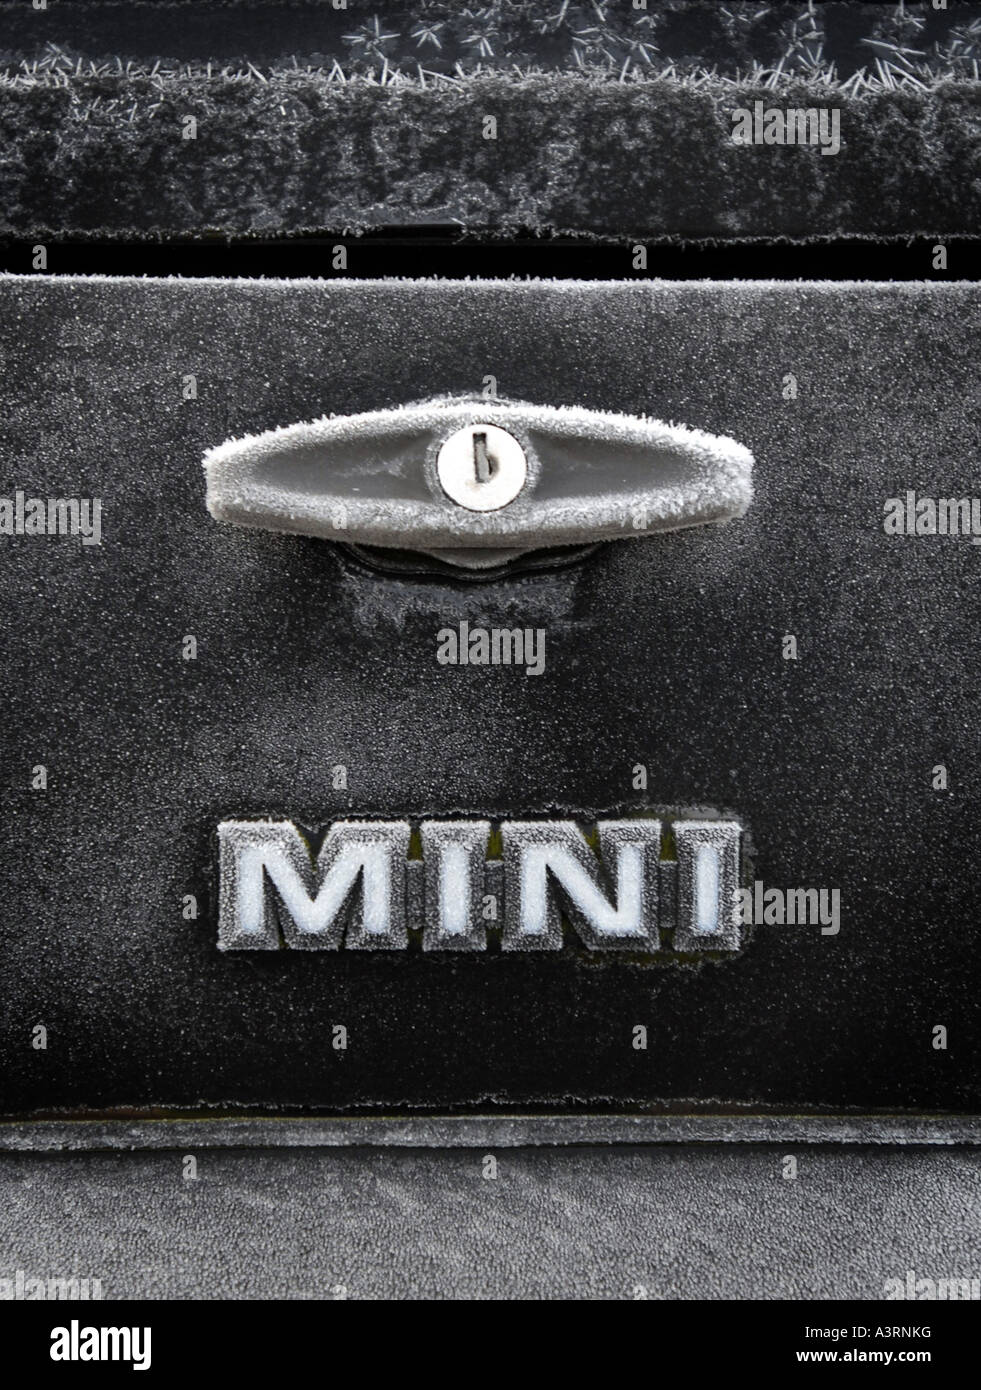 AUSTIN ROVER MINI CAR BOOT LID COVERED IN FROST.UK - Stock Image